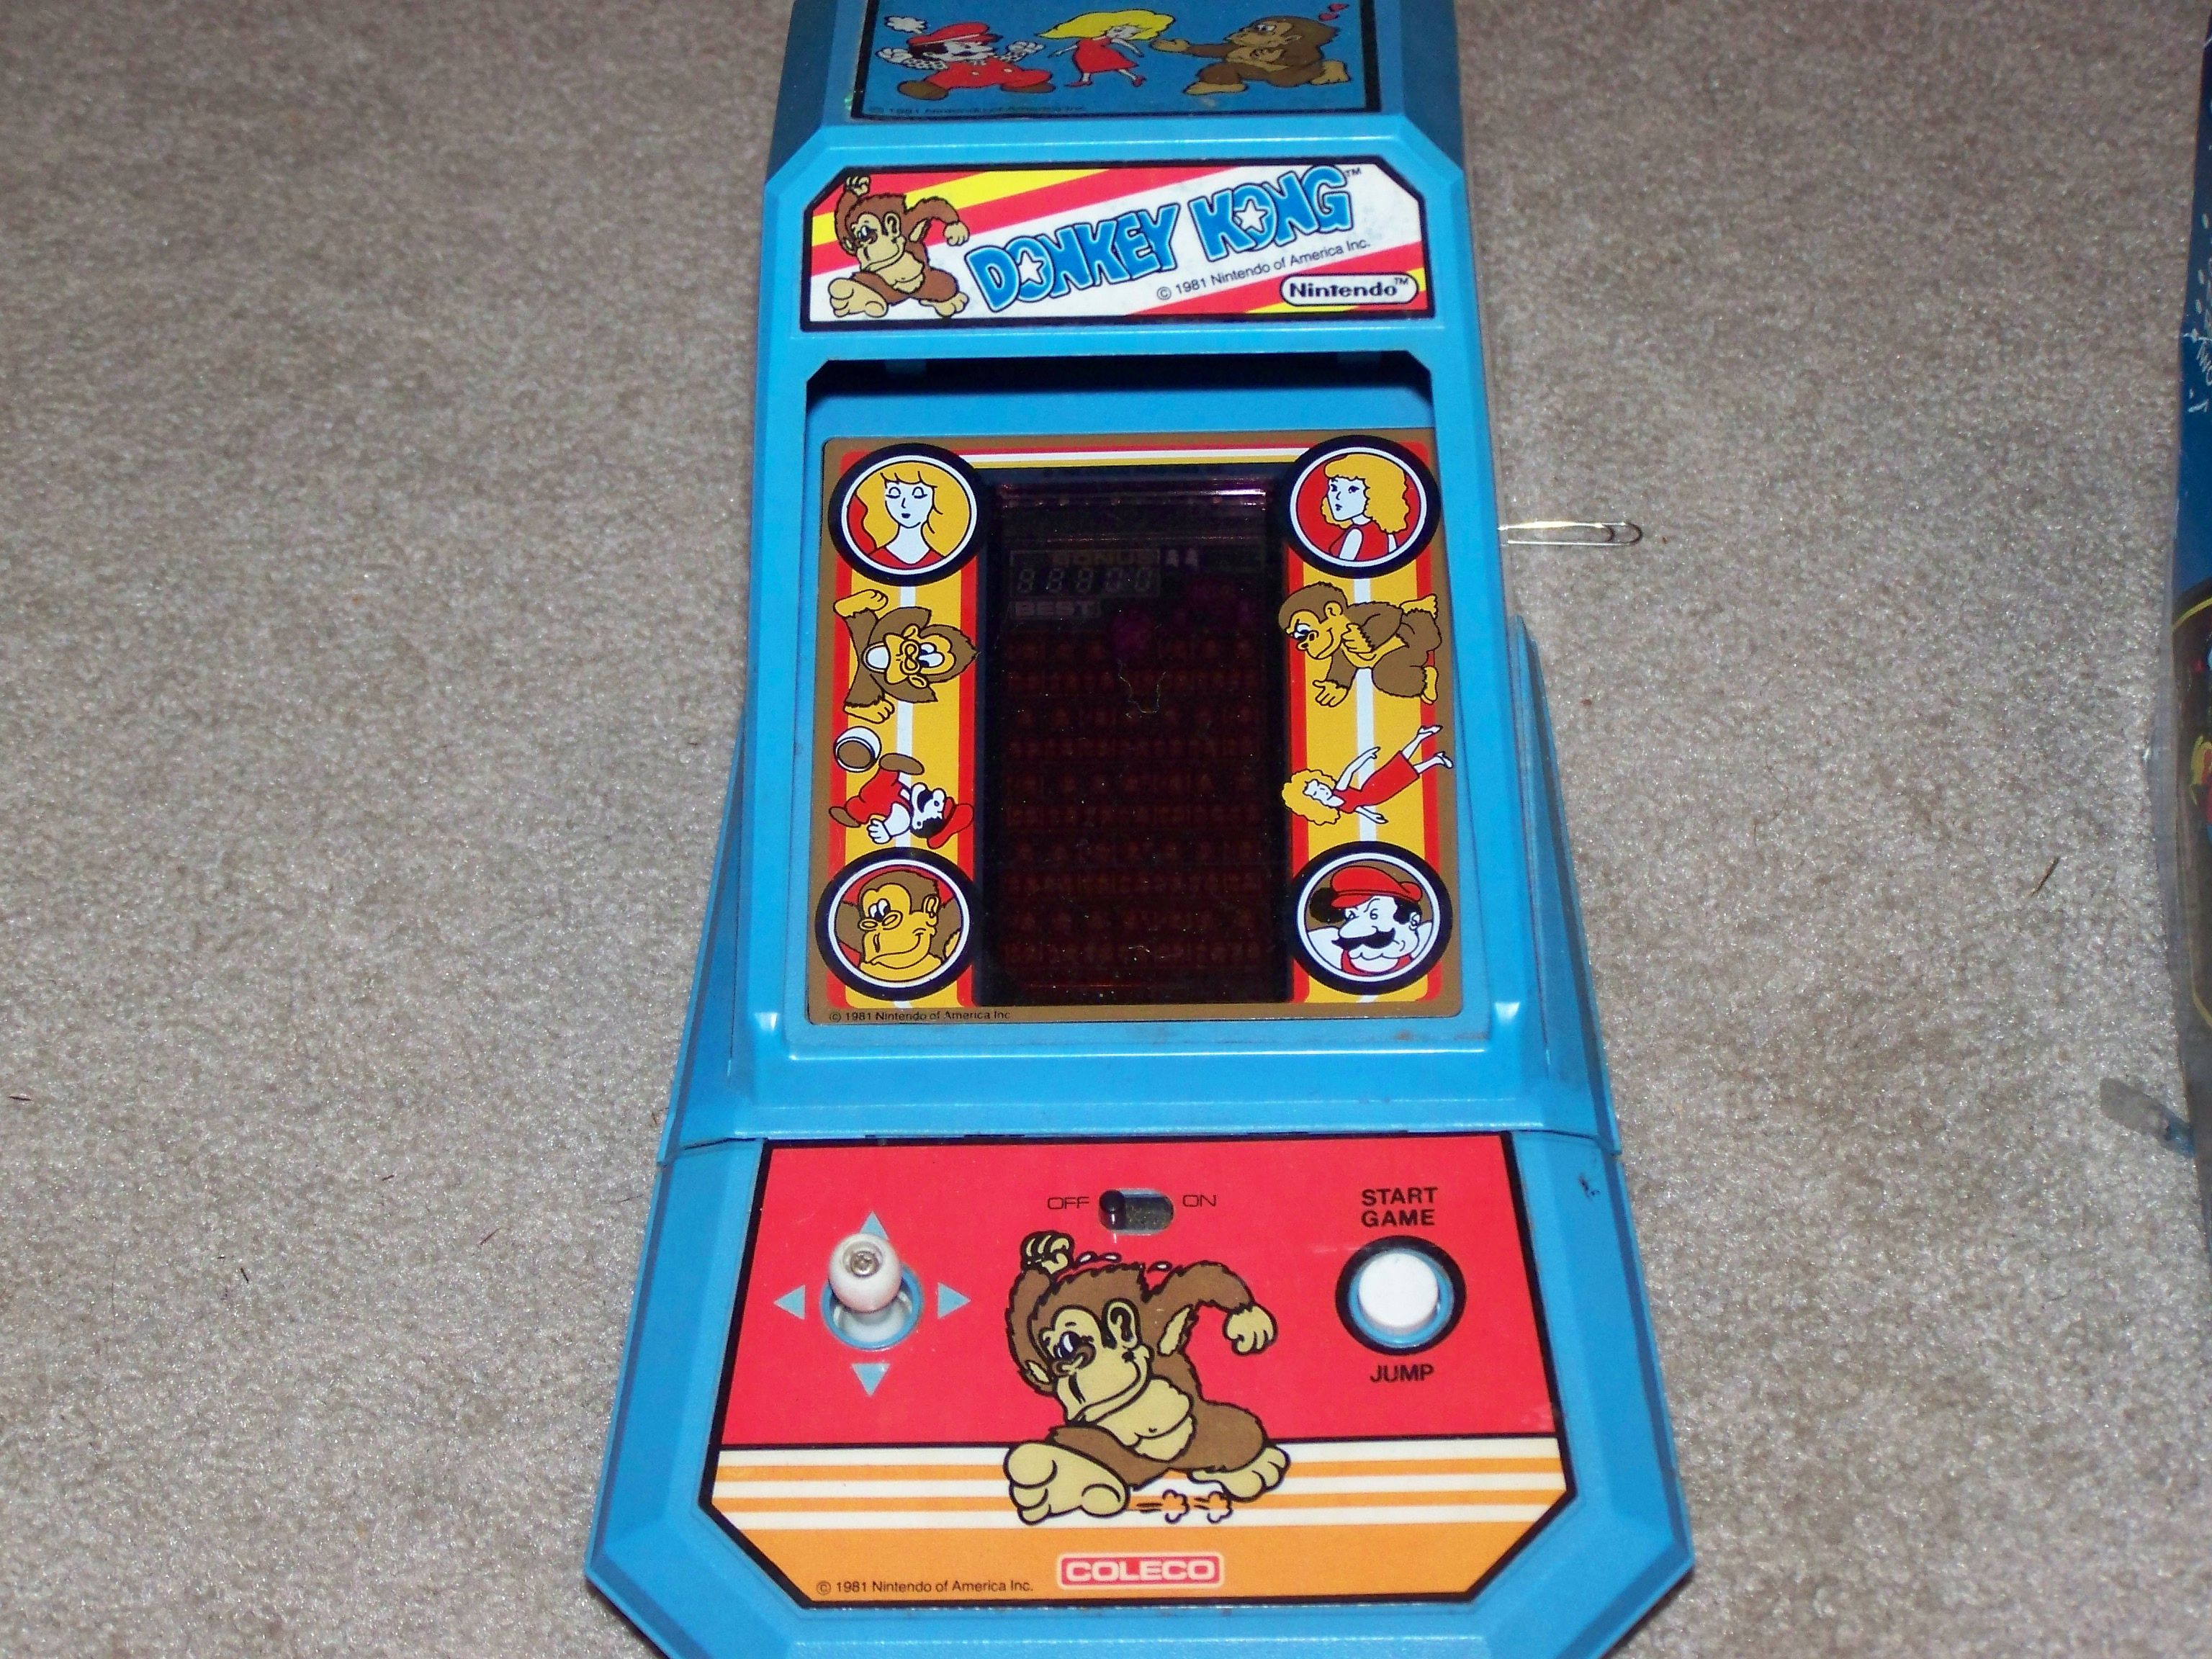 Donkey kong the ds of the 80s 80s toys donkey